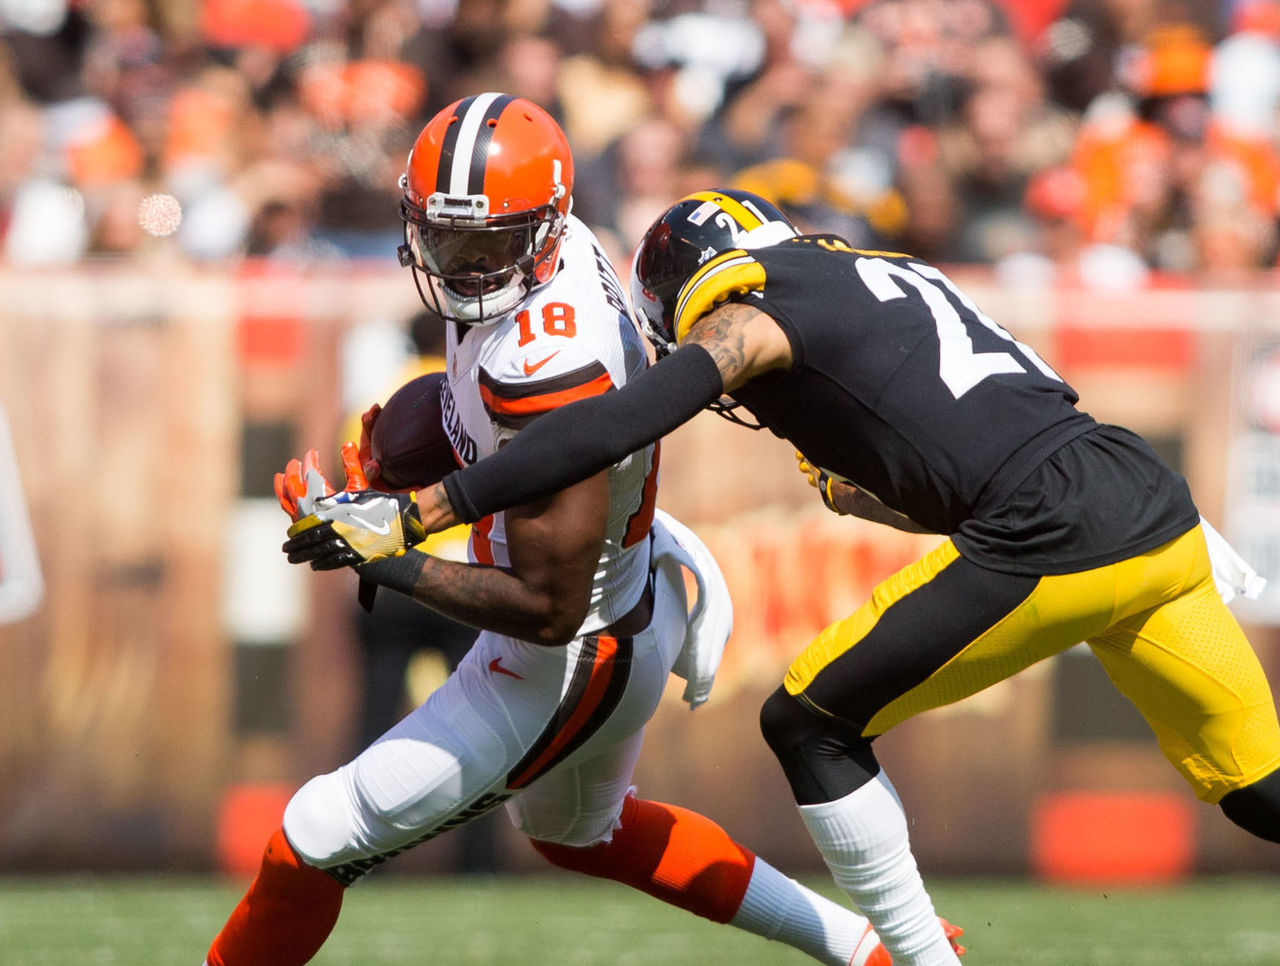 Cropped 2017 09 10t210913z 1874516162 nocid rtrmadp 3 nfl pittsburgh steelers at cleveland browns